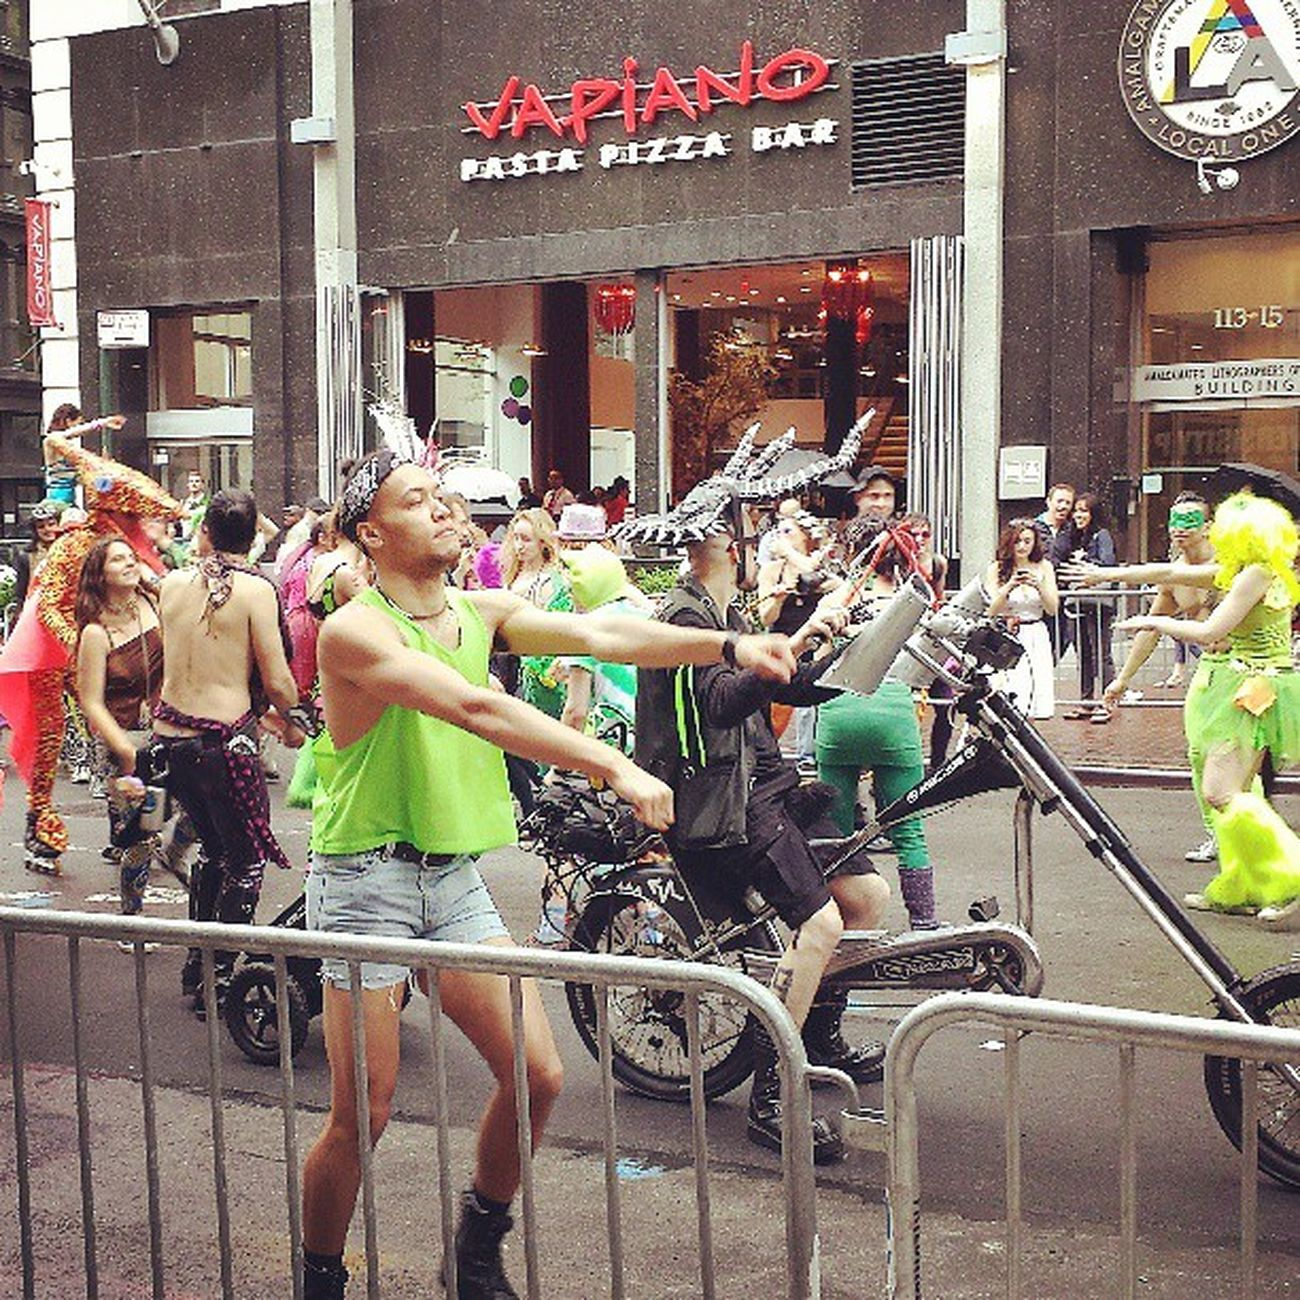 NY being awesome! Devilhorns Pterodactyl Pekpekshorts NY streetfair bigassmotorcycle